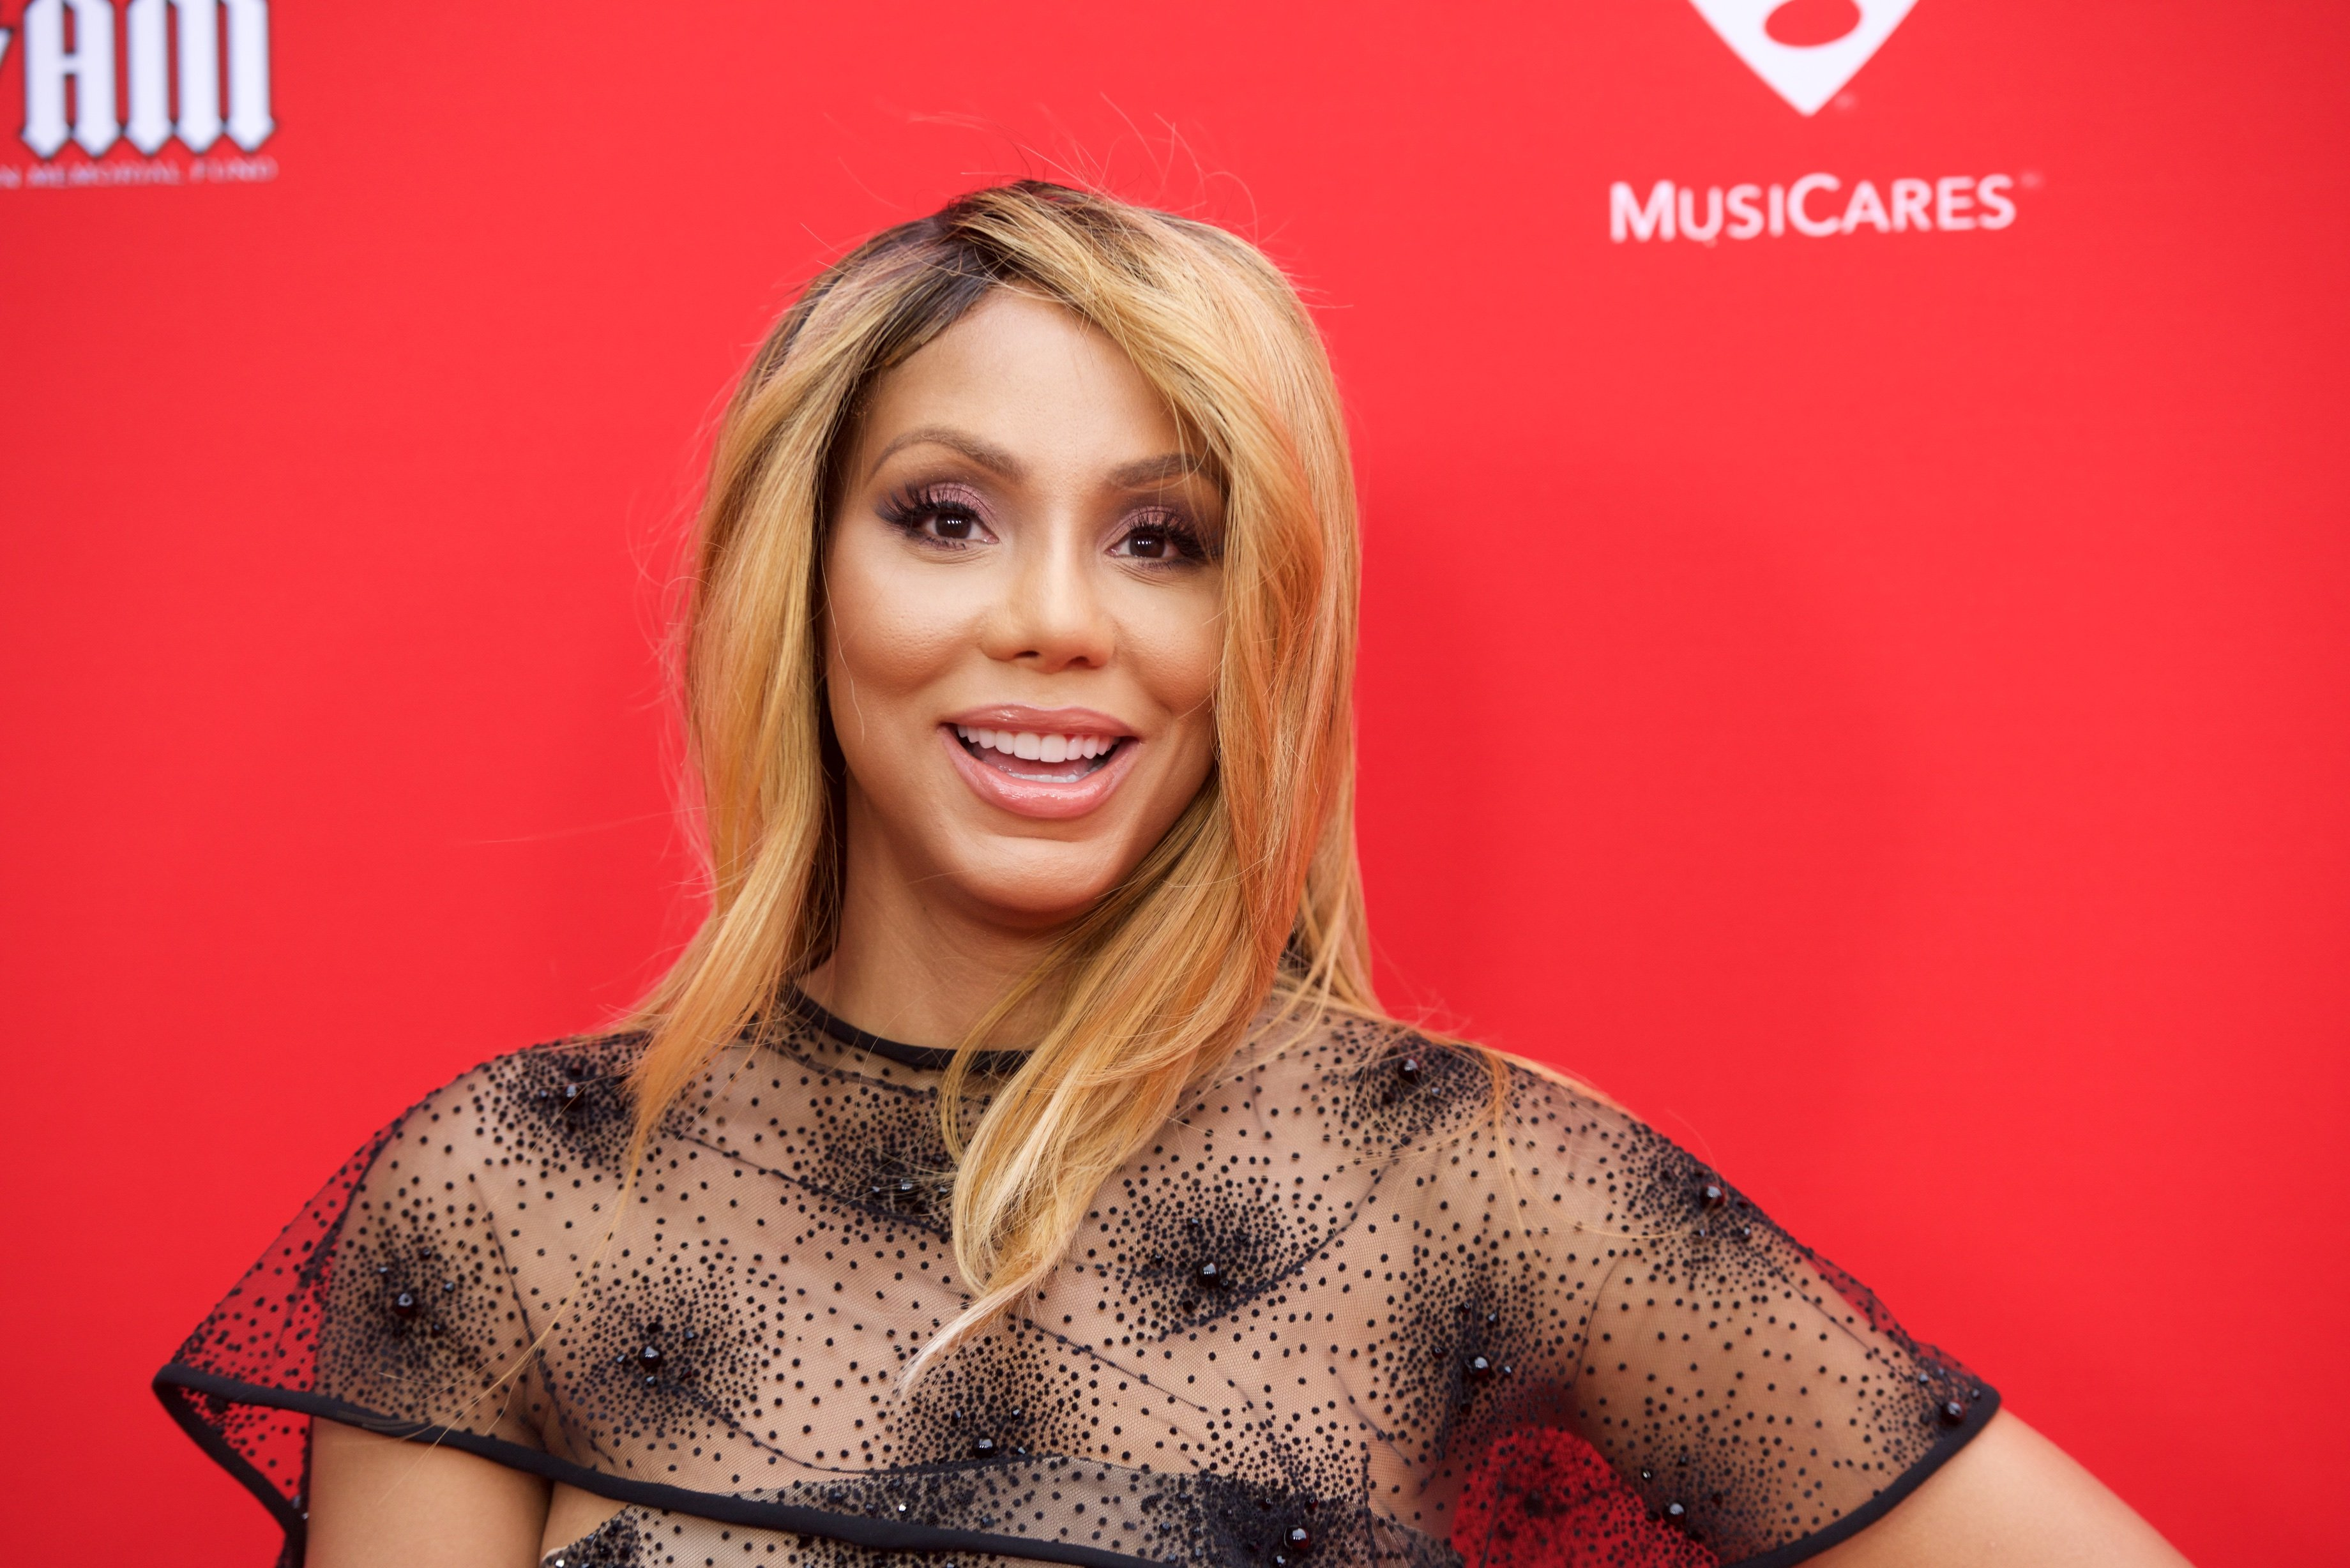 Tamar Braxton attending a tribute concert in May 2016. | Photo: Getty Images